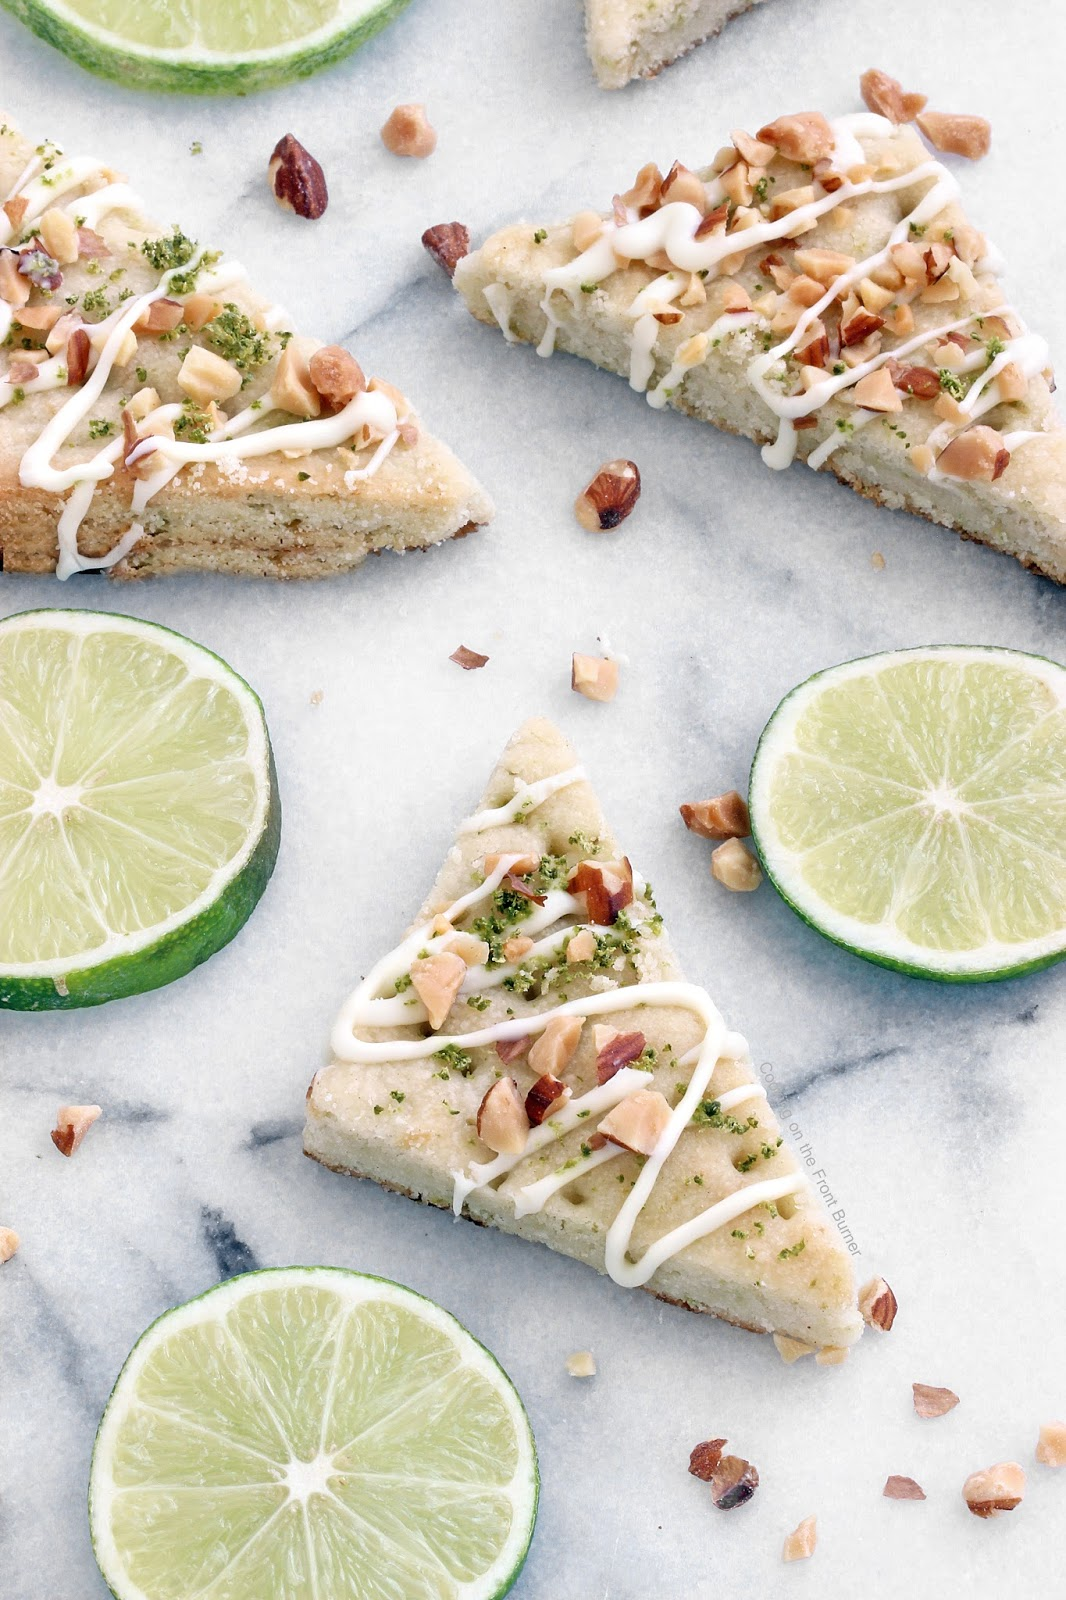 Lime Shortbread Cookies | Cooking on the Front Burner #dessert #whitechocolate #almonds